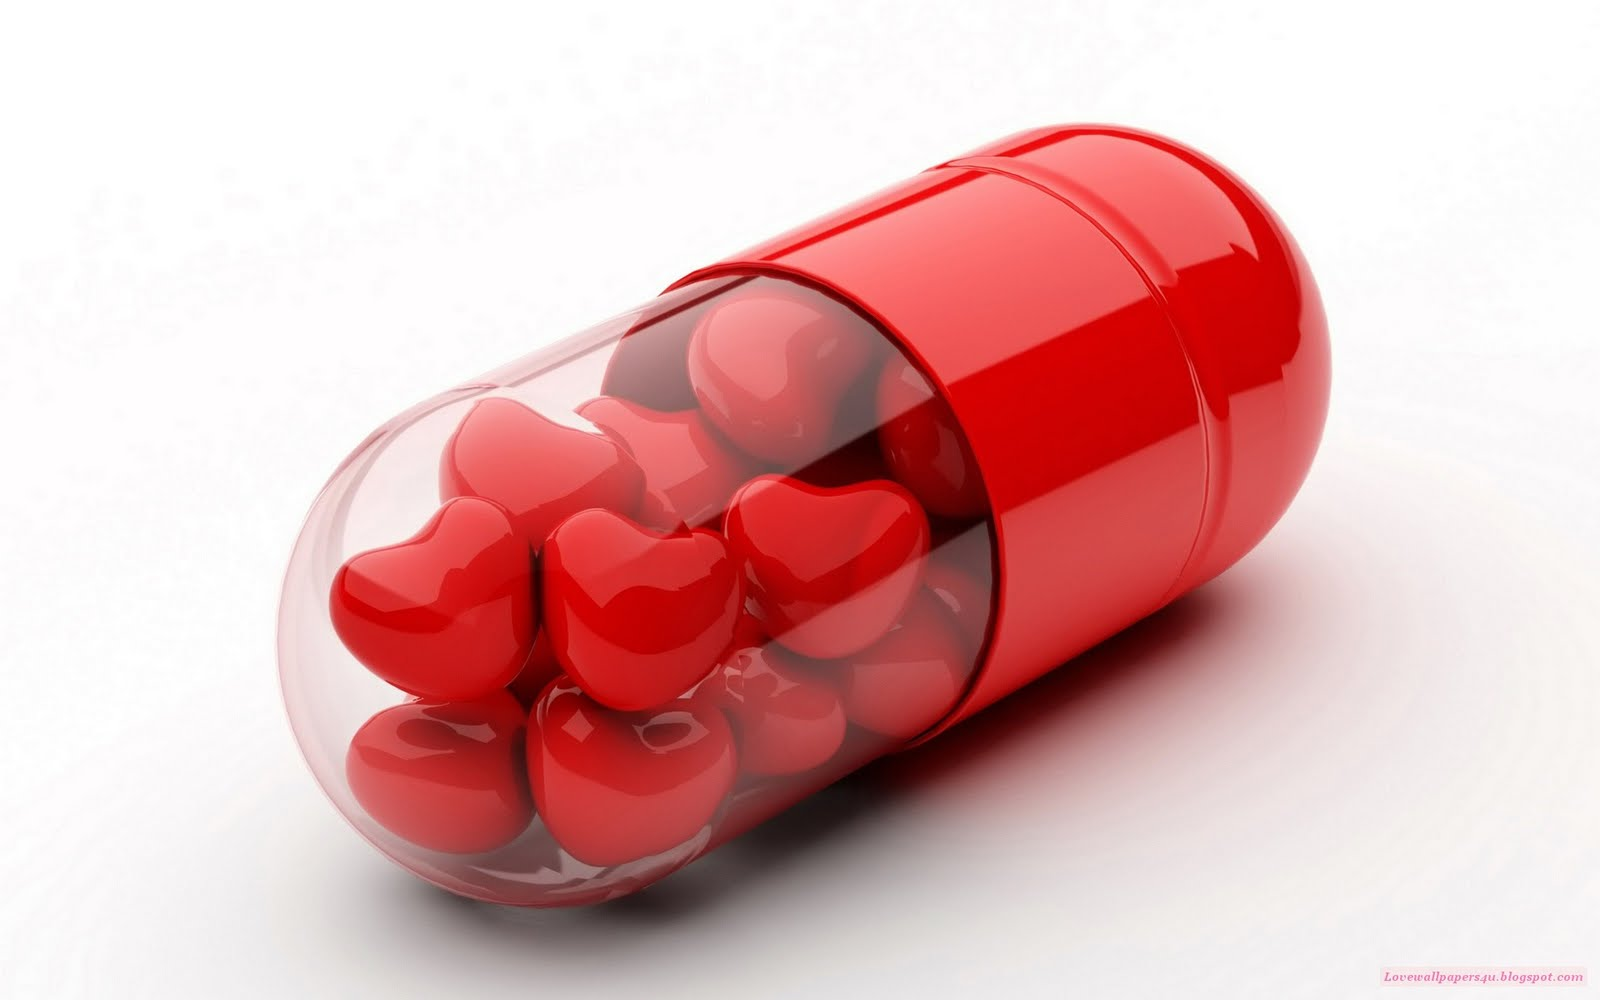 http://3.bp.blogspot.com/-y9uMQe7PirQ/TyLJk3mHFOI/AAAAAAAADQU/6o0f1QR-AJ8/s1600/valentine-wallpaper-download-love-pills.jpg